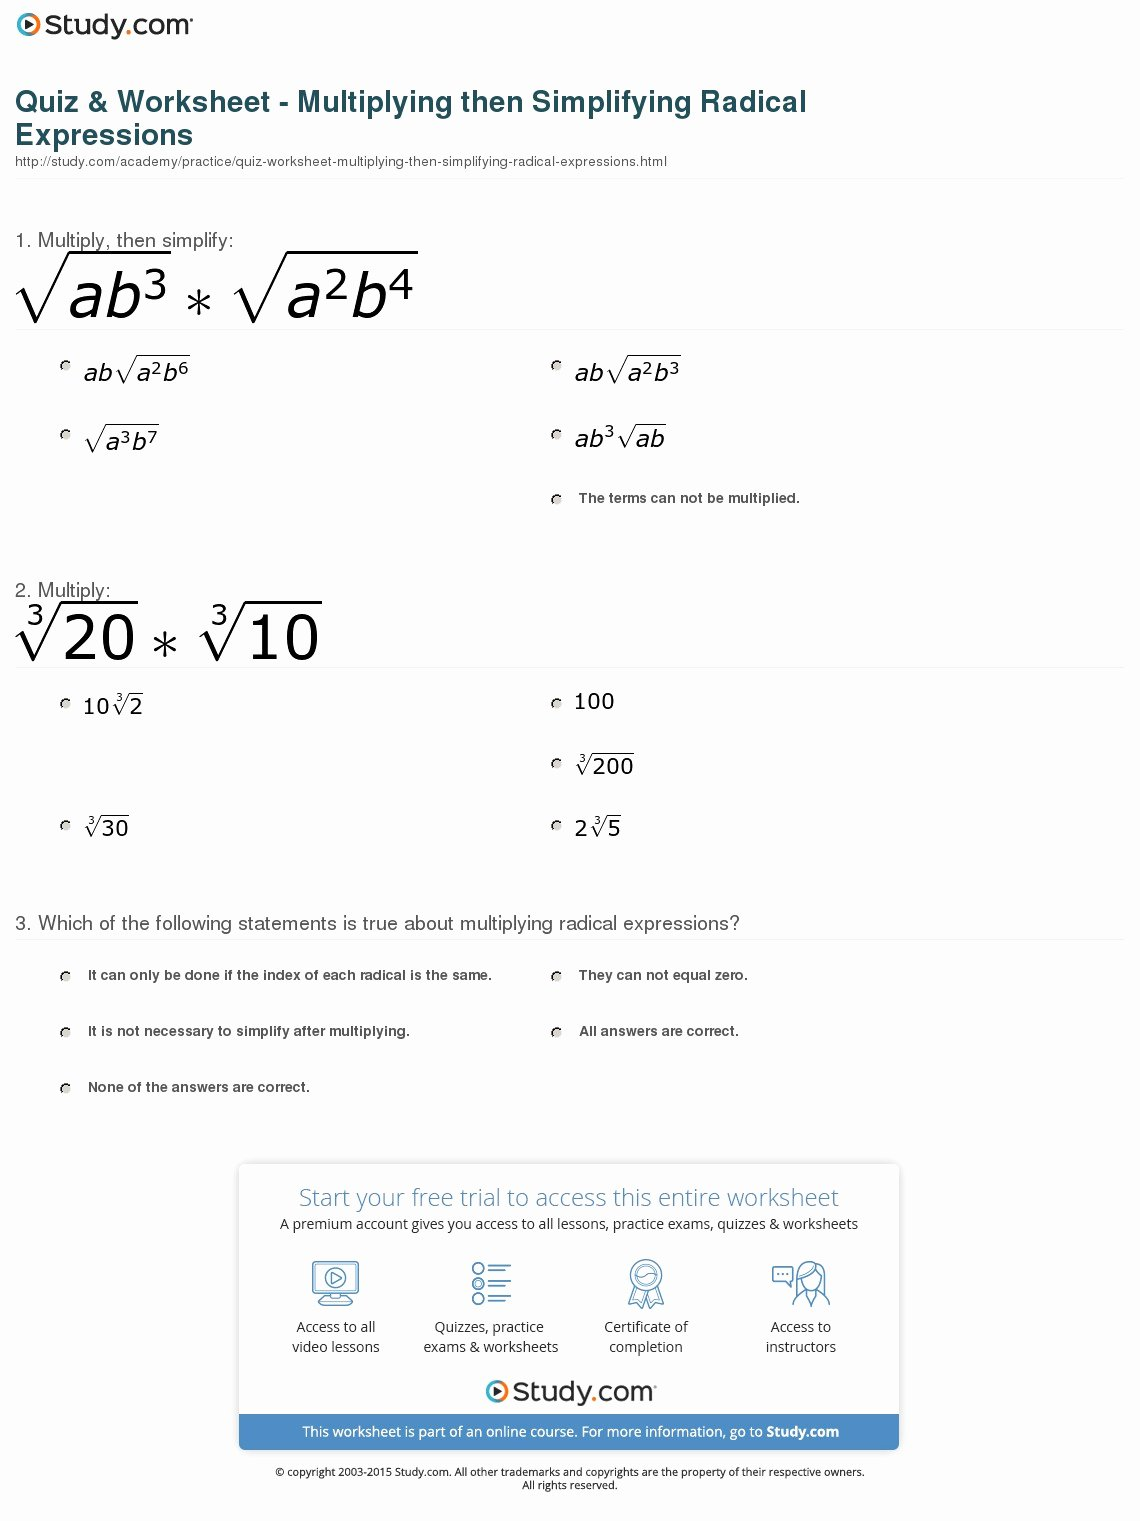 Multiplying Radical Expressions Worksheet Unique Quiz & Worksheet Multiplying then Simplifying Radical